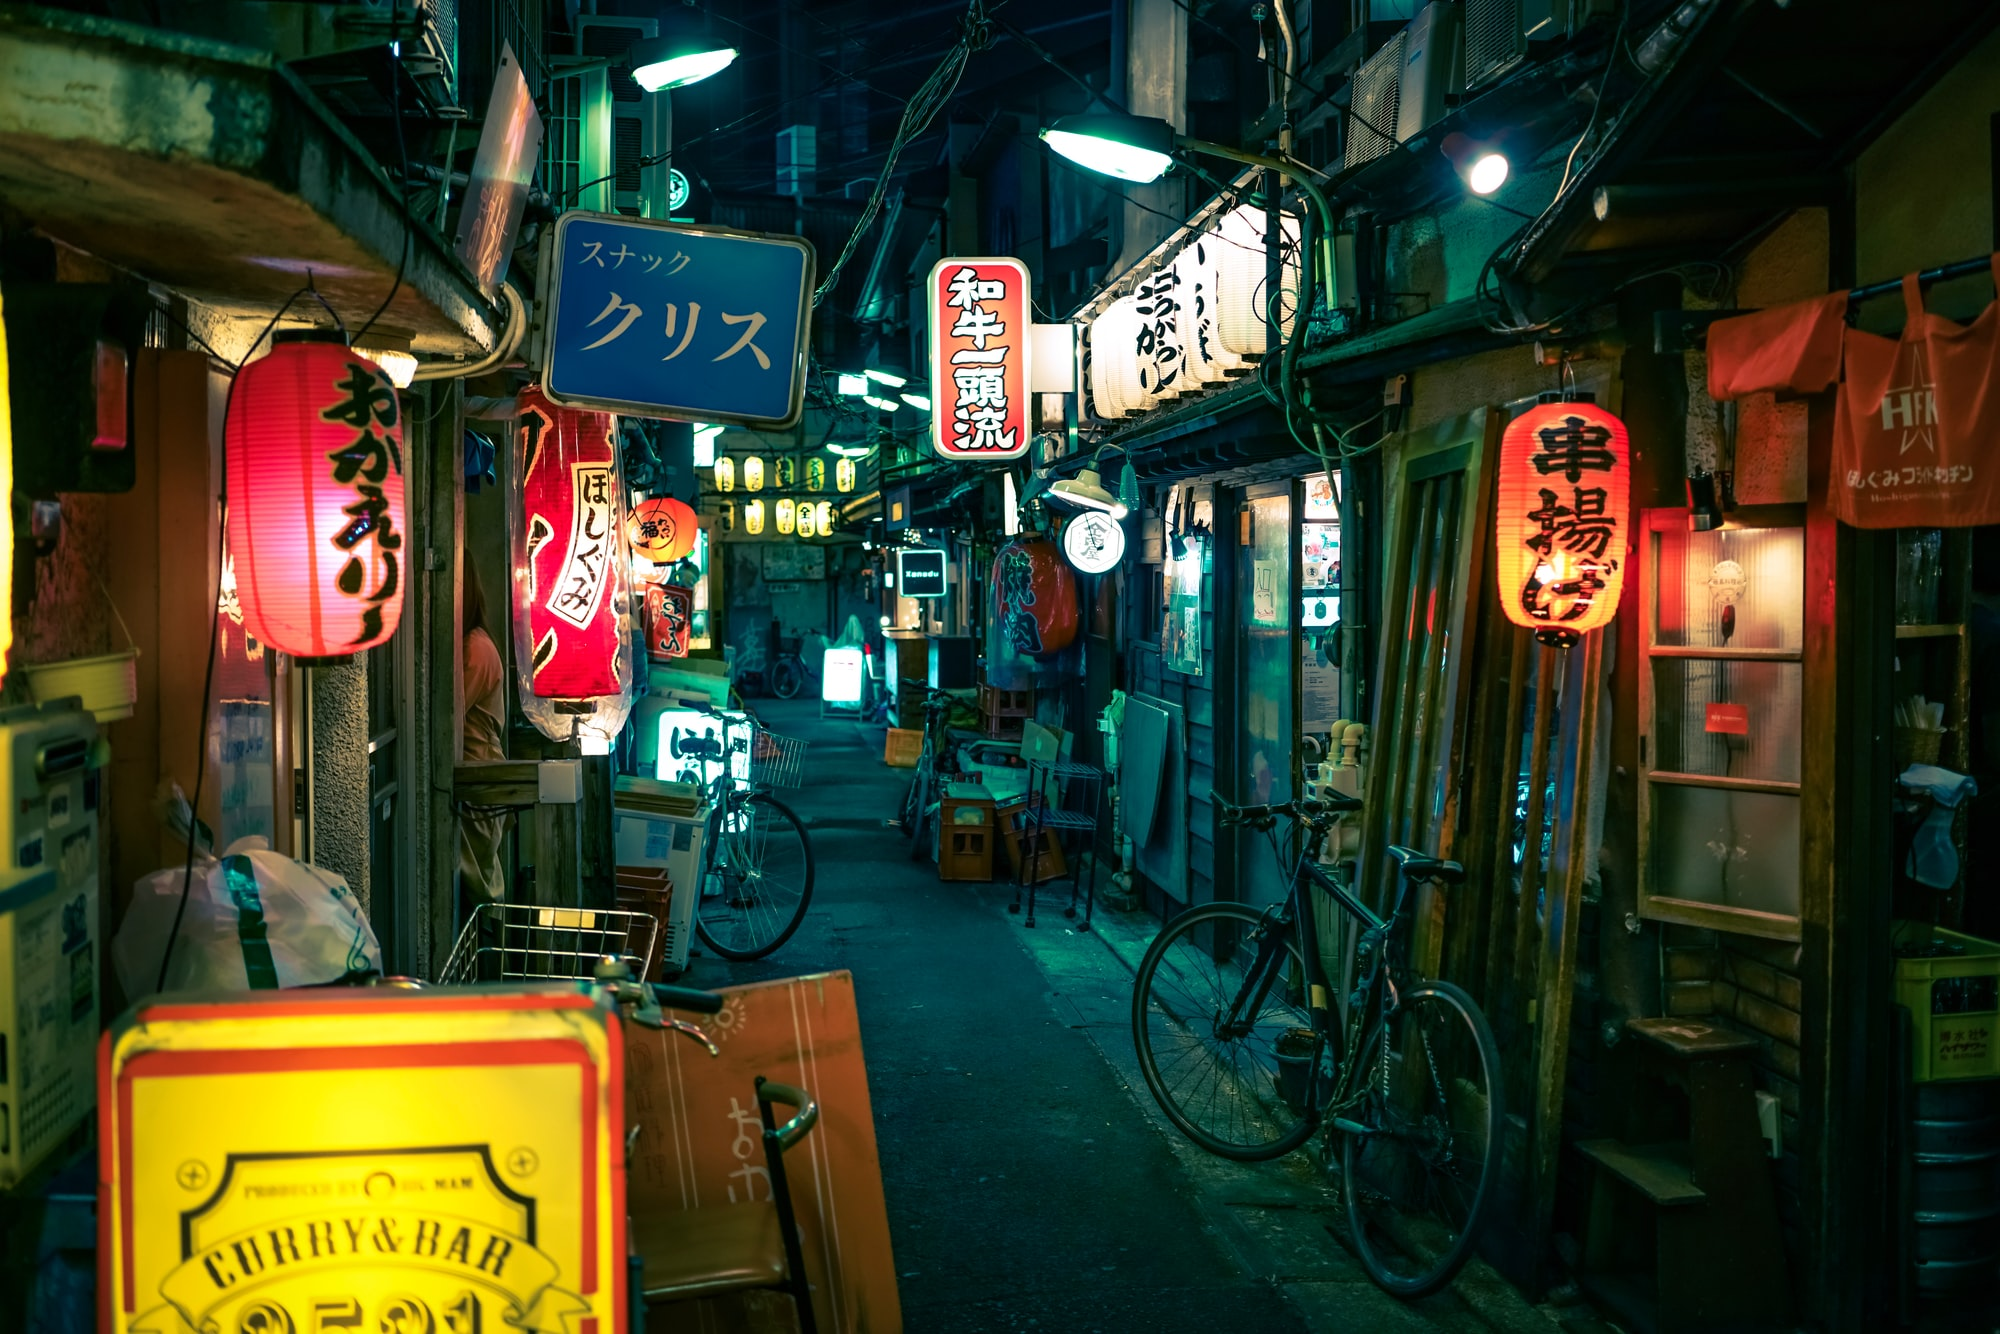 Wandering through the small back alleys of Sangenjaya, Tokyo, around midnight, after the last train has left and only the locals are still around drinking and enjoying lively conversations. This place is packed to the brim with tiny bars that only fit a few people, shoulder to shoulder. Each bar with it's own vibe and new experience to enjoy.